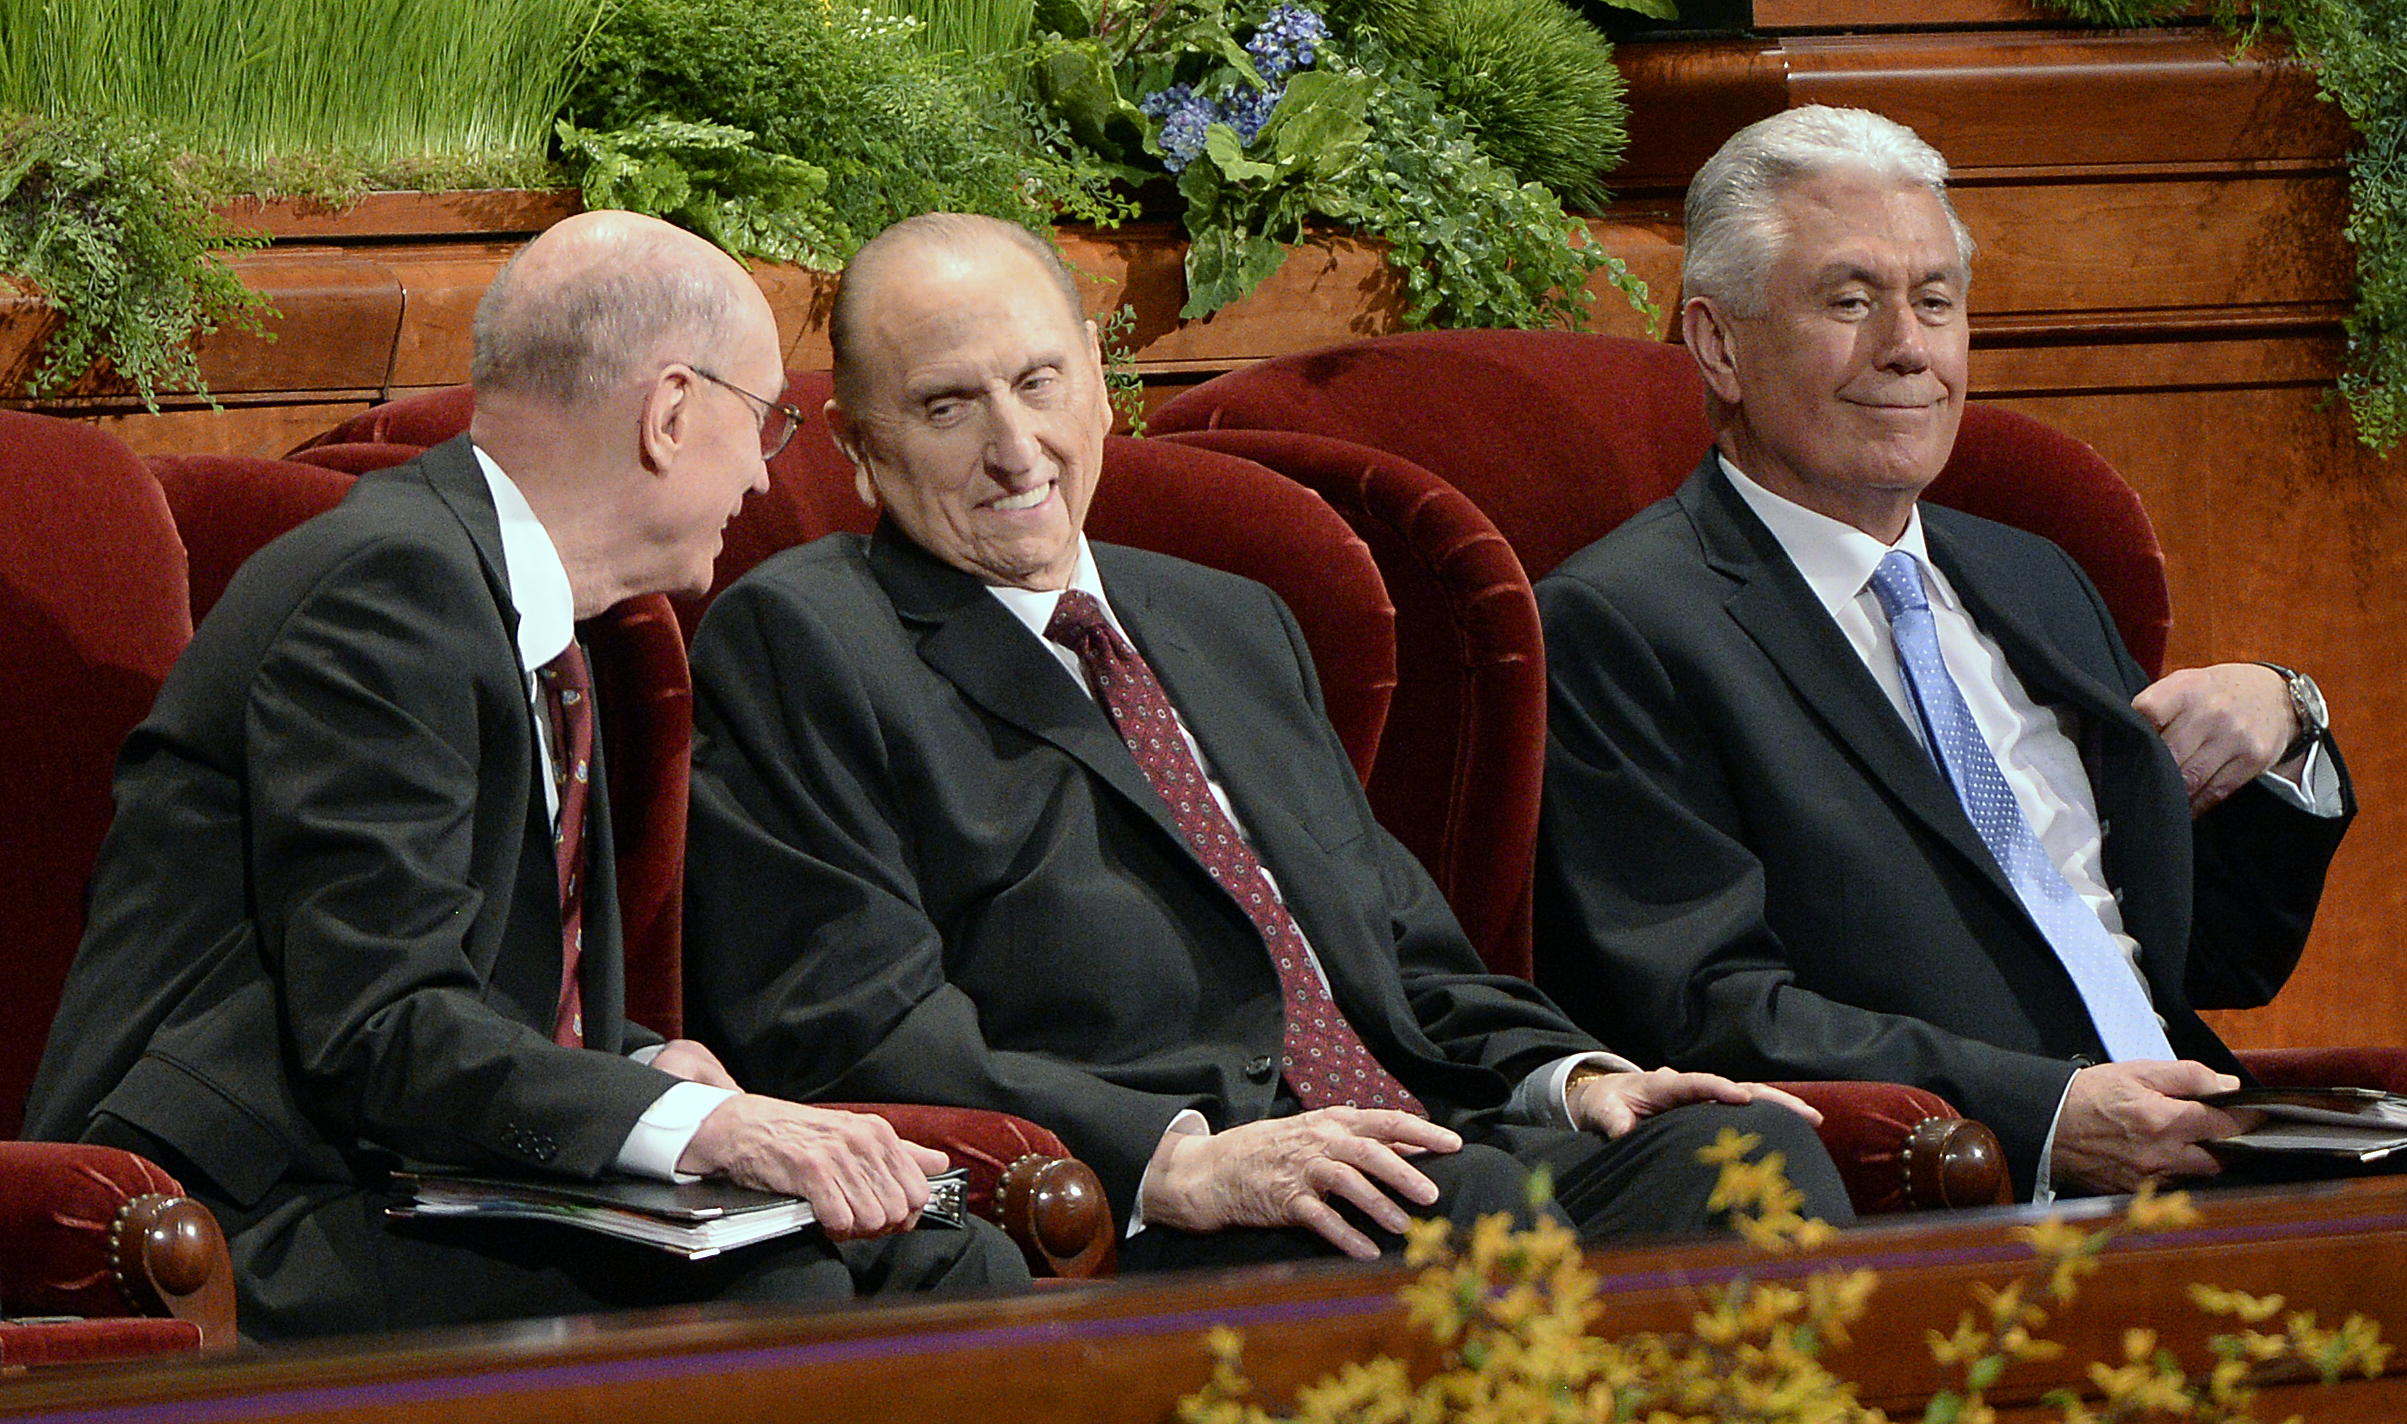 (Al Hartmann  |  The Salt Lake Tribune ) President Thomas S. Monson (center) with Henry B. Eyring (left) and Dieter F. Uchtdorf (right), at the 185th LDS General Conference on April 5, 2015.